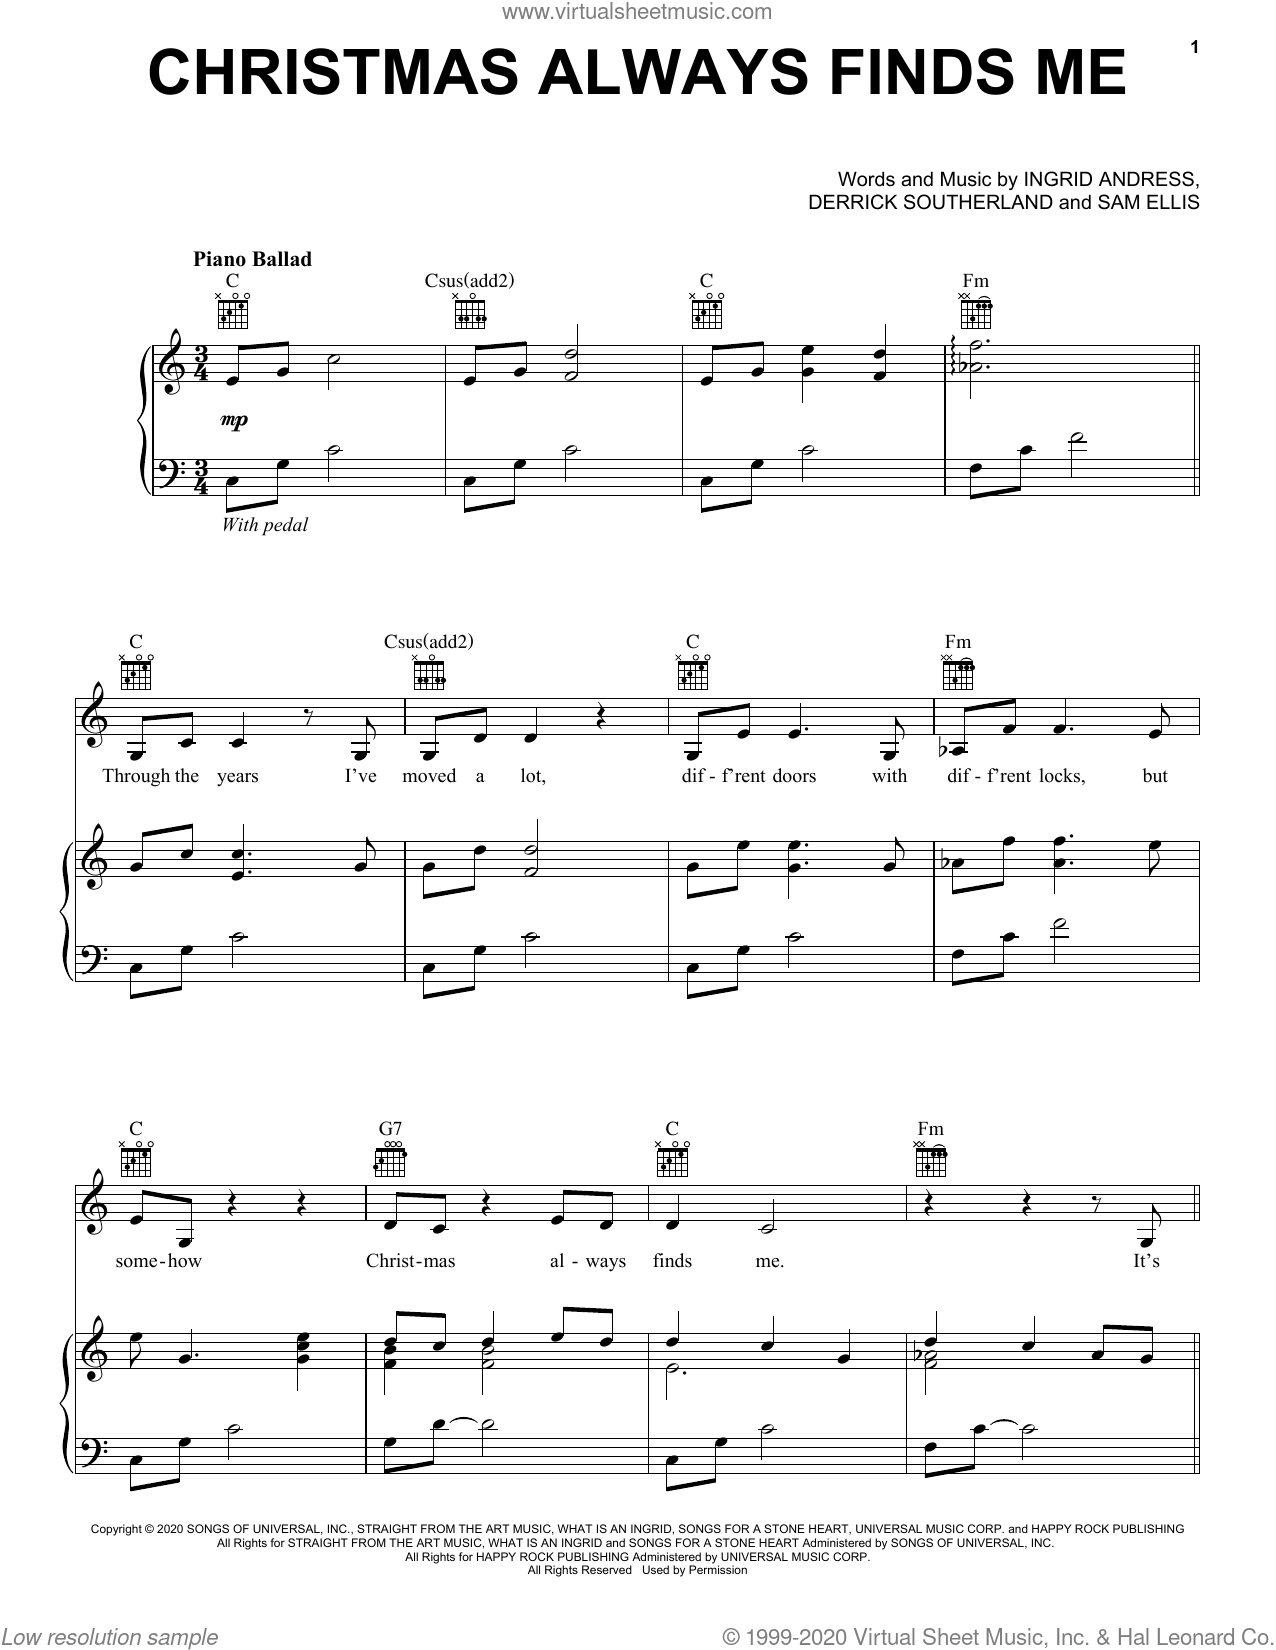 Christmas Always Finds Me sheet music for voice, piano or guitar by Ingrid Andress, Derrick Southerland and Sam Ellis, intermediate skill level